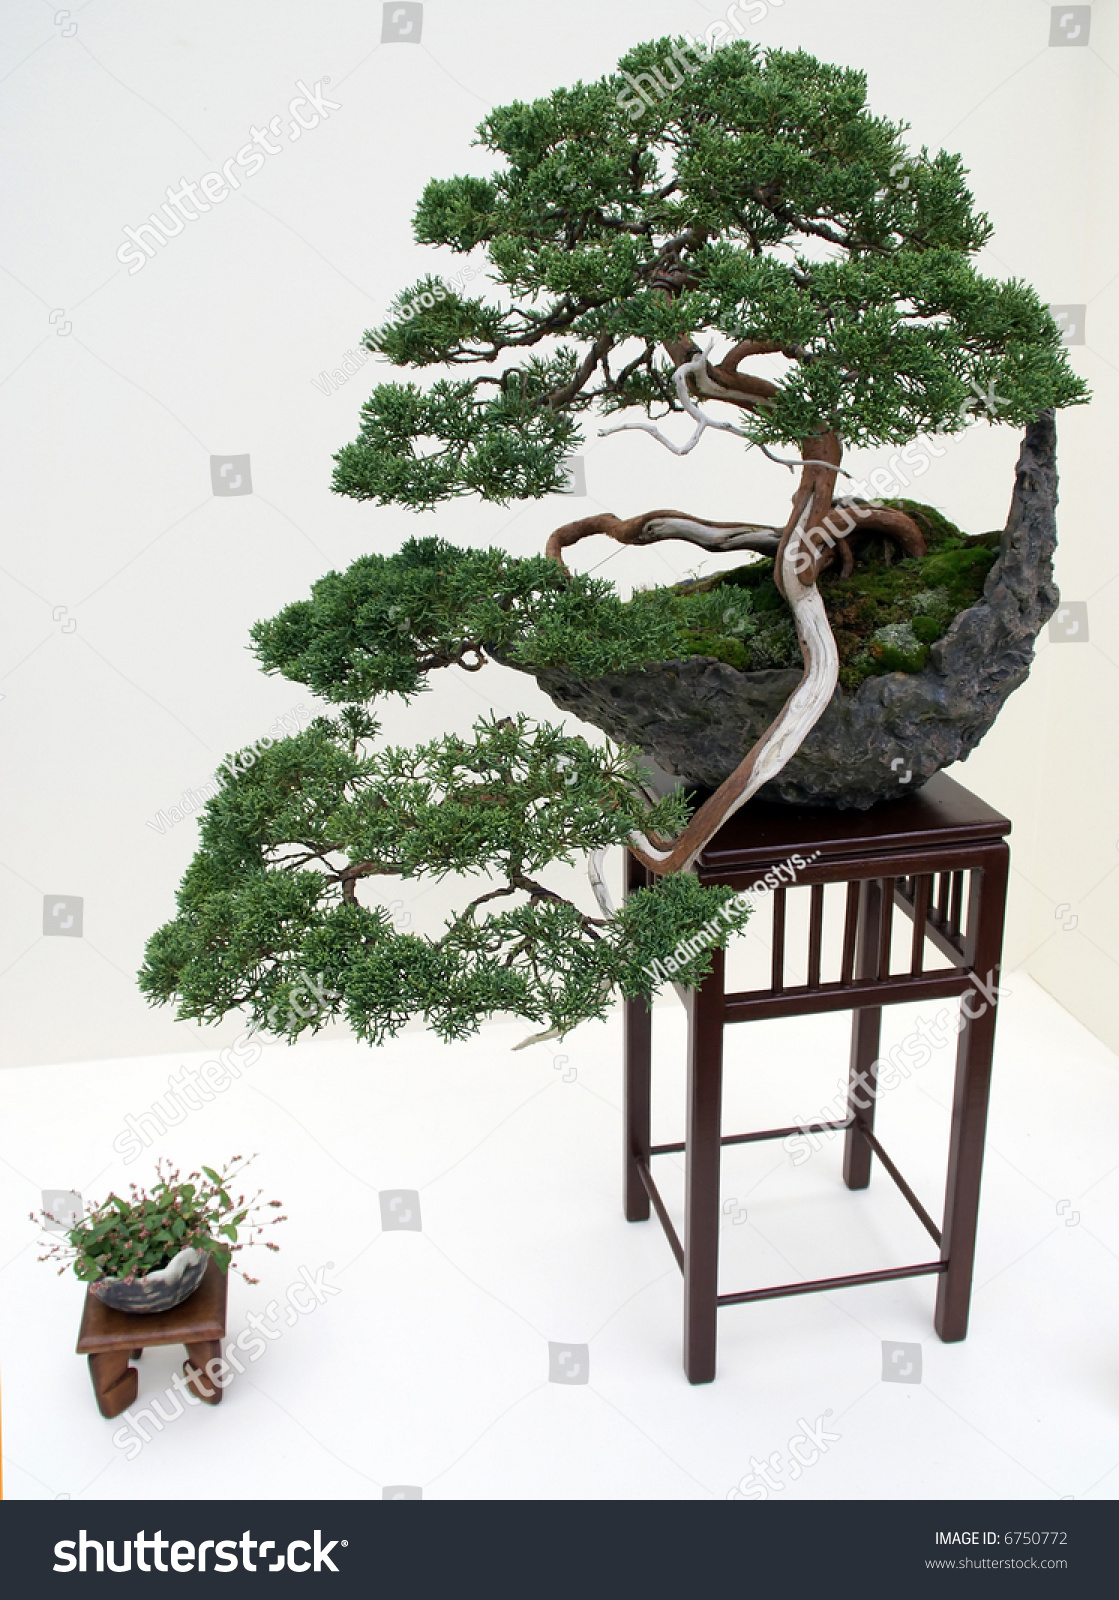 Kiku Exhibit In The New York Botanical Garden Japanese Bonsai